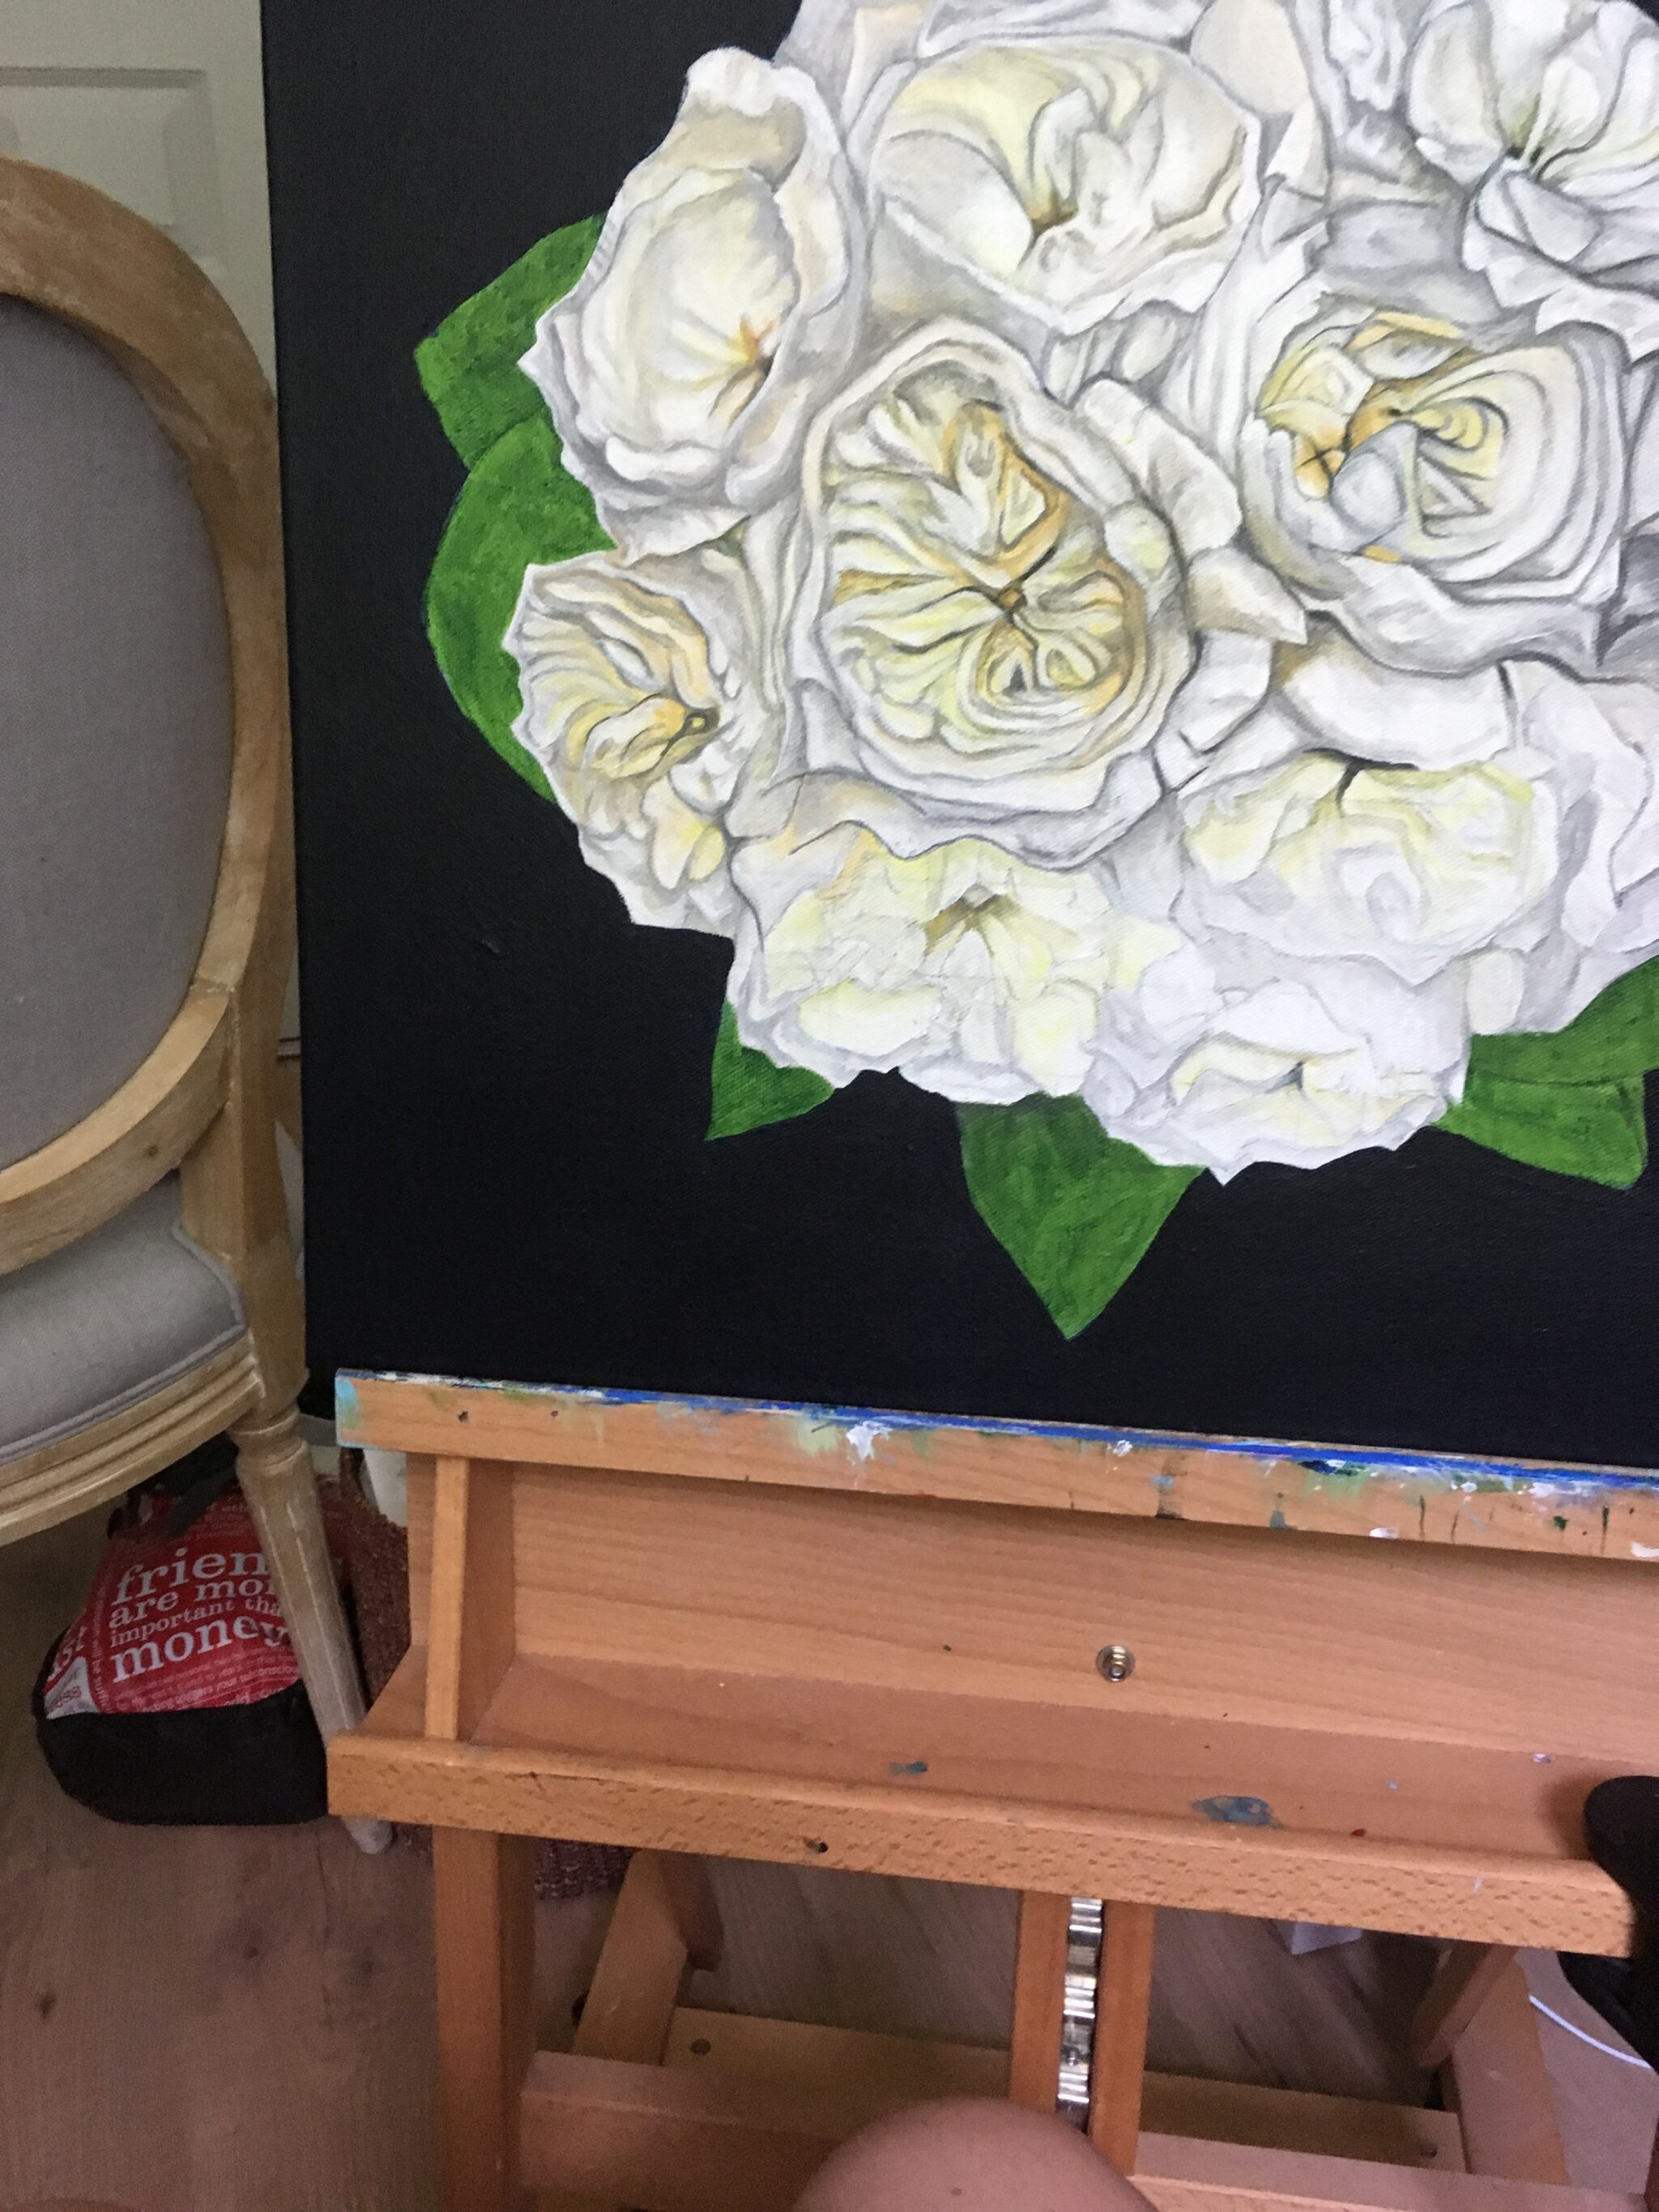 work in progress of an original bridal bouquet painting by Erica Eriksdotter